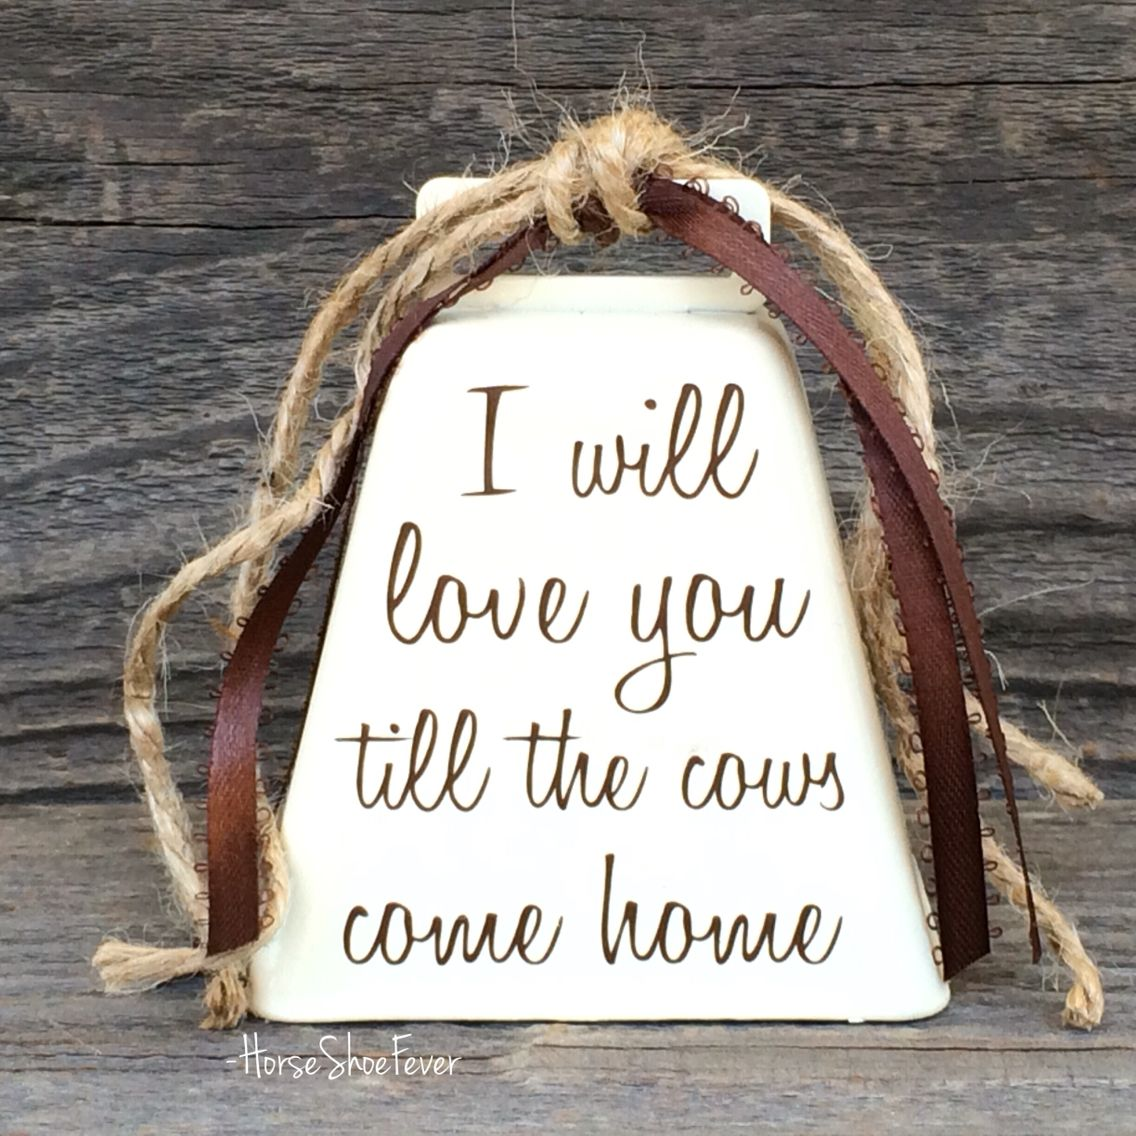 Download Cowbell Decor. HorseShoeFever on Etsy. Cowgirl, cowboy ...